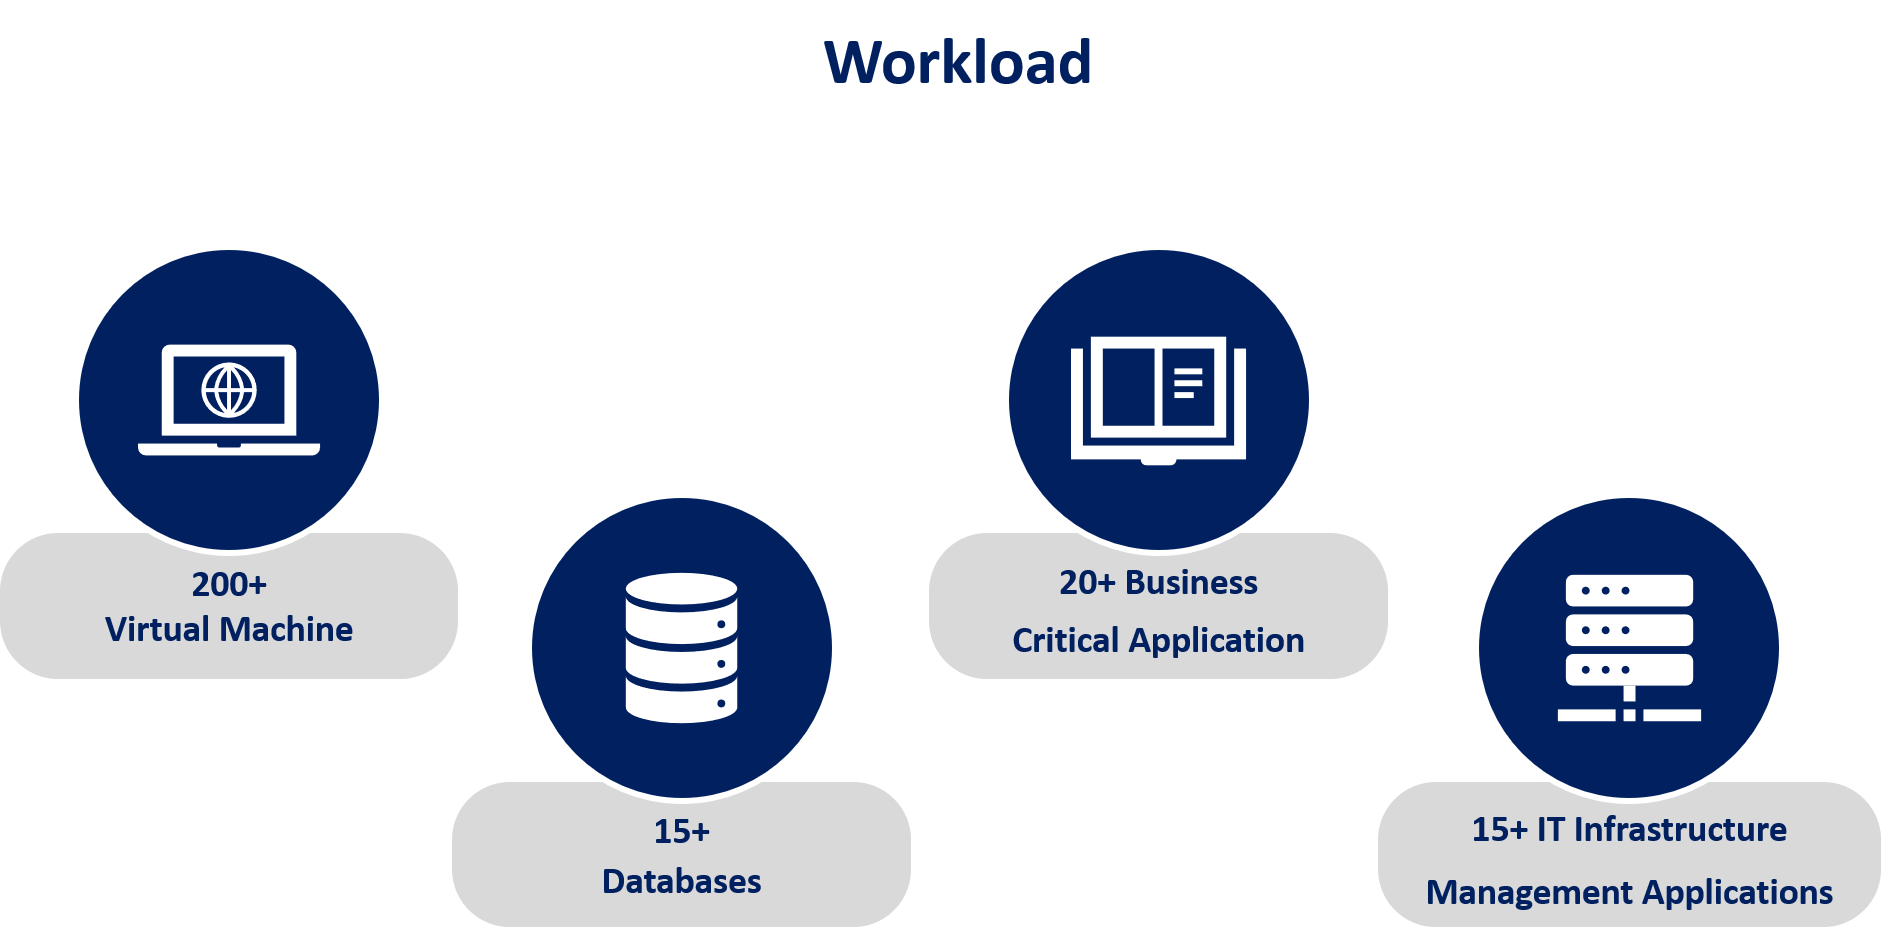 IT Infrastructure Work Load Diagram to showcase Virtual Machines, Databases, Business Applications and IT Infrastructure Management Operations.